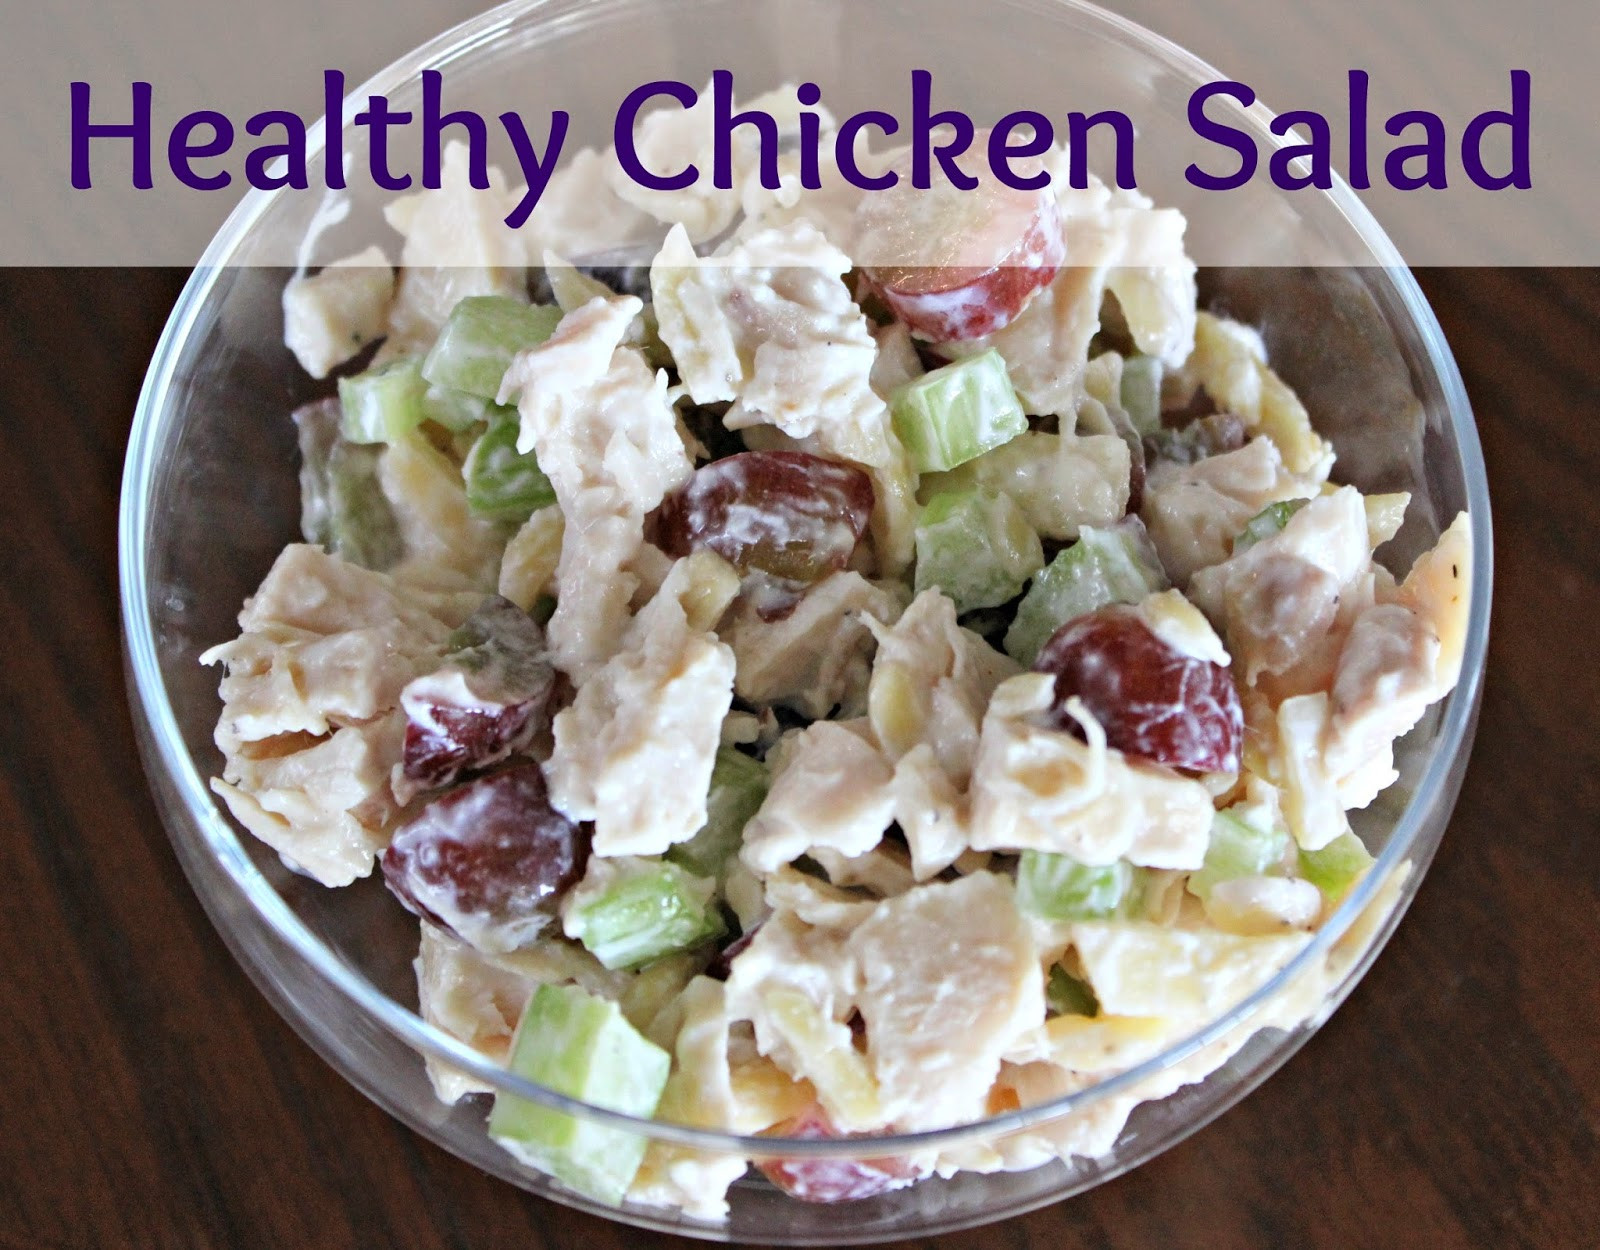 Healthy Chicken Salad  Healthy Chicken Salad Recipe — Dishmaps